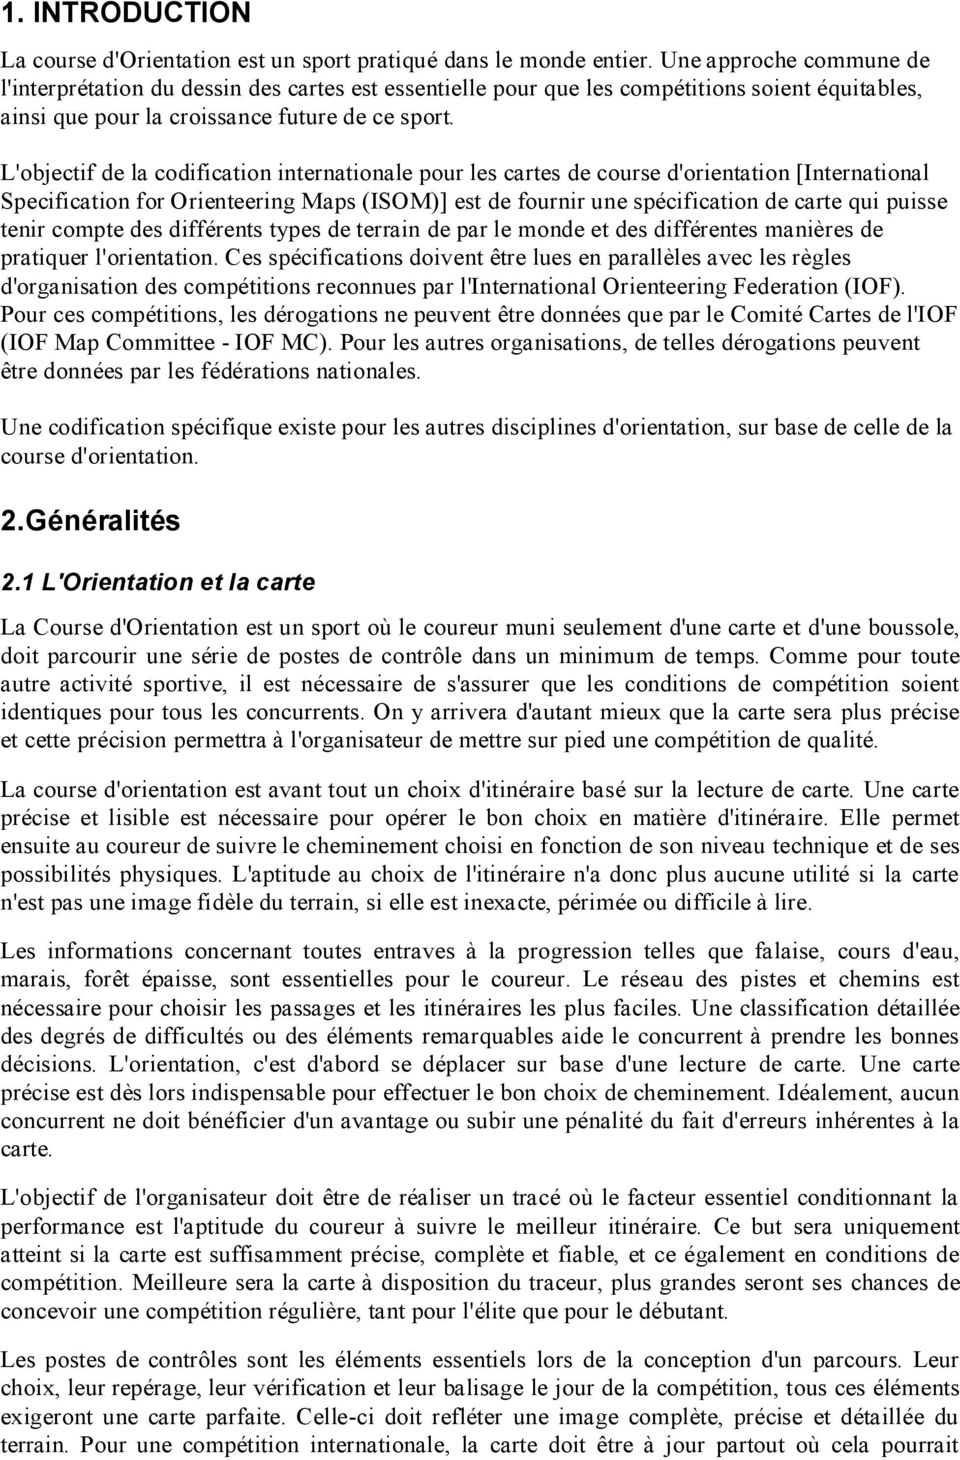 L'objectif de la codification internationale pour les cartes de course d'orientation [International Specification for Orienteering Maps (ISOM)] est de fournir une spécification de carte qui puisse